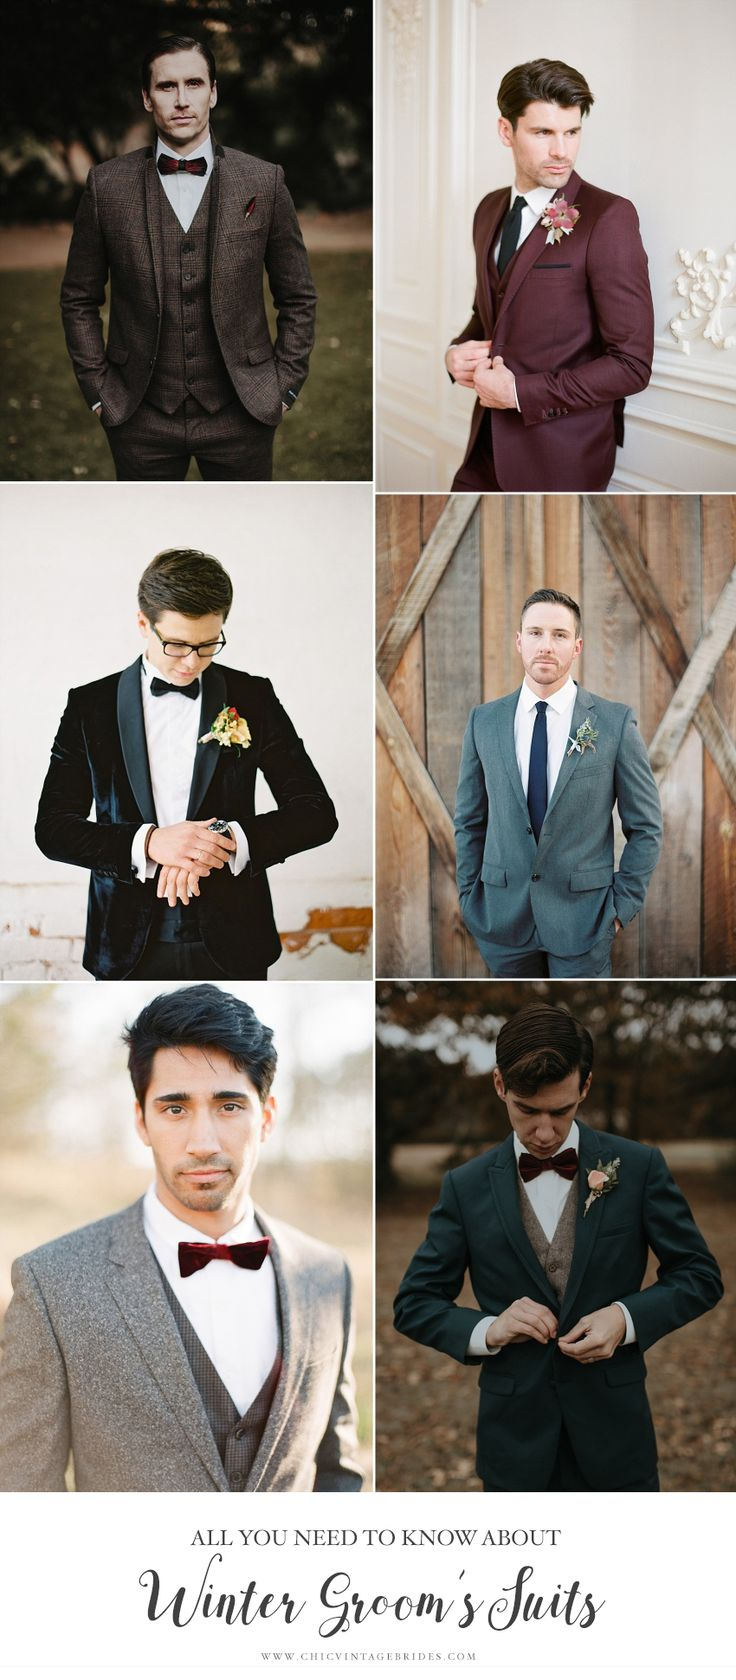 What to Look for in a Winter Groom's Suit